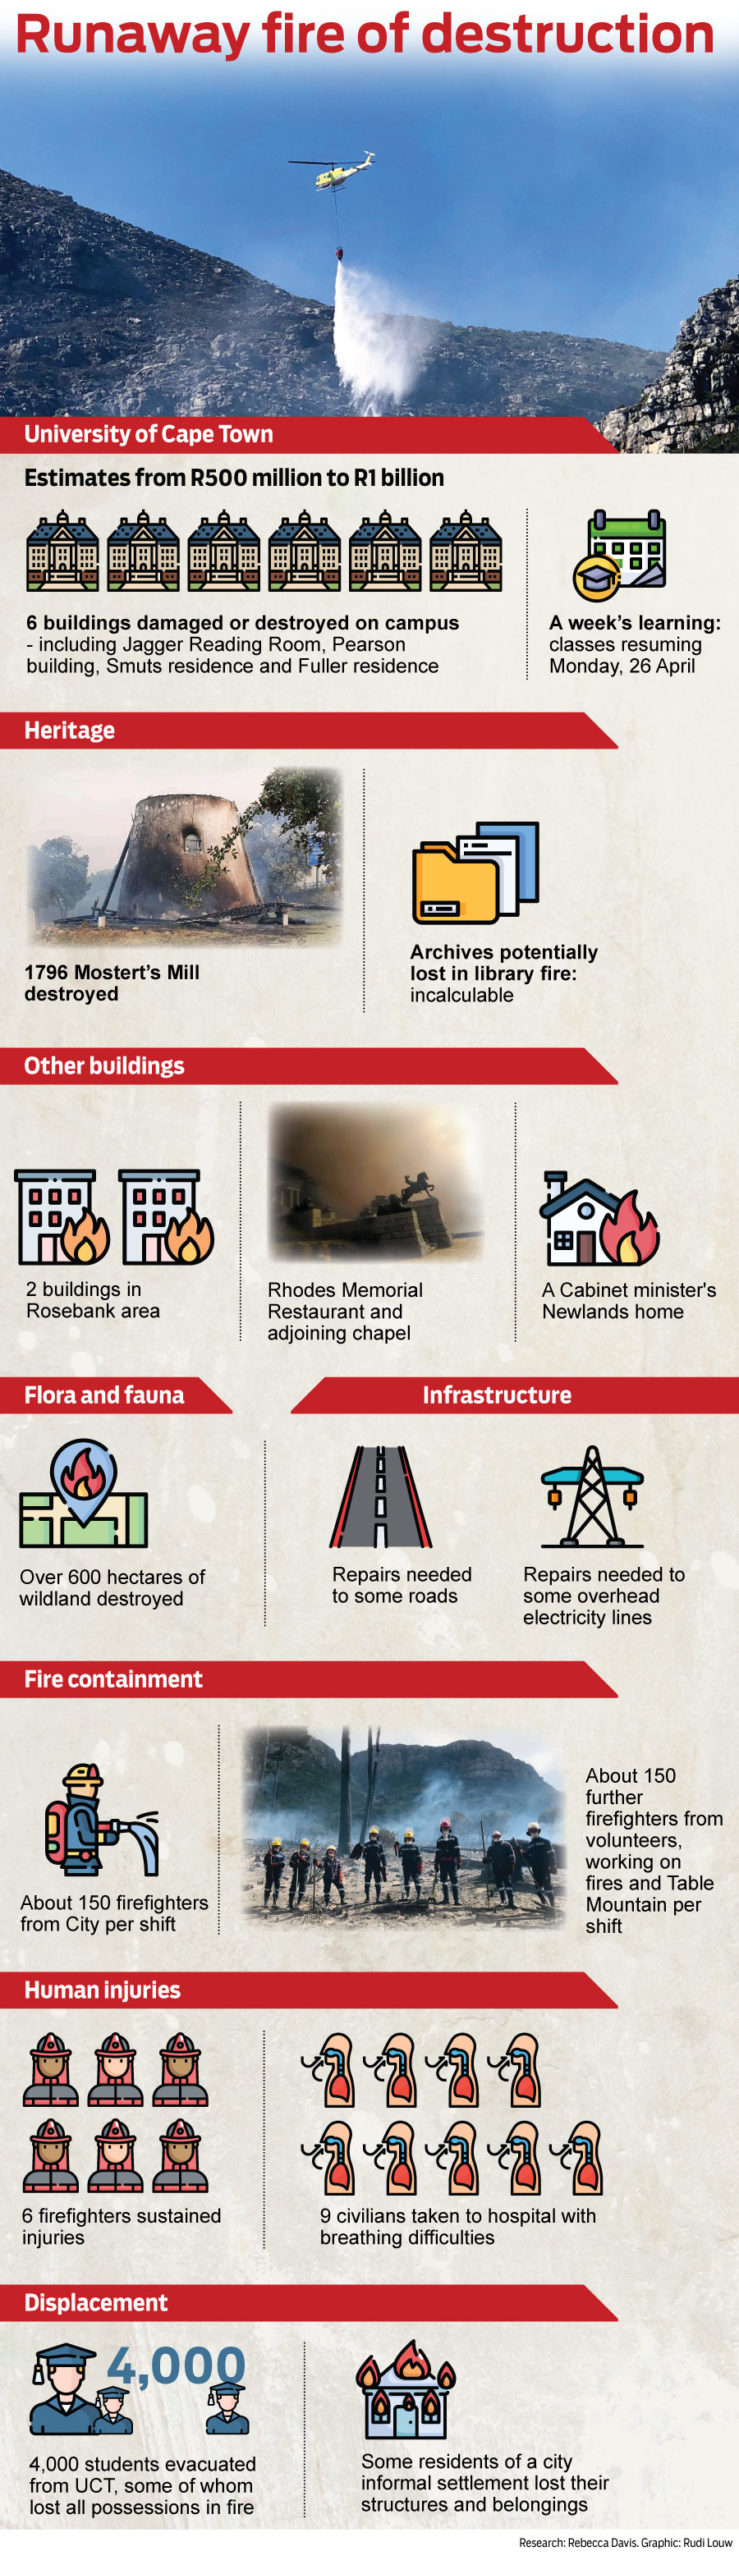 Becs-damage-resources-fire-inset-scaled.jpg